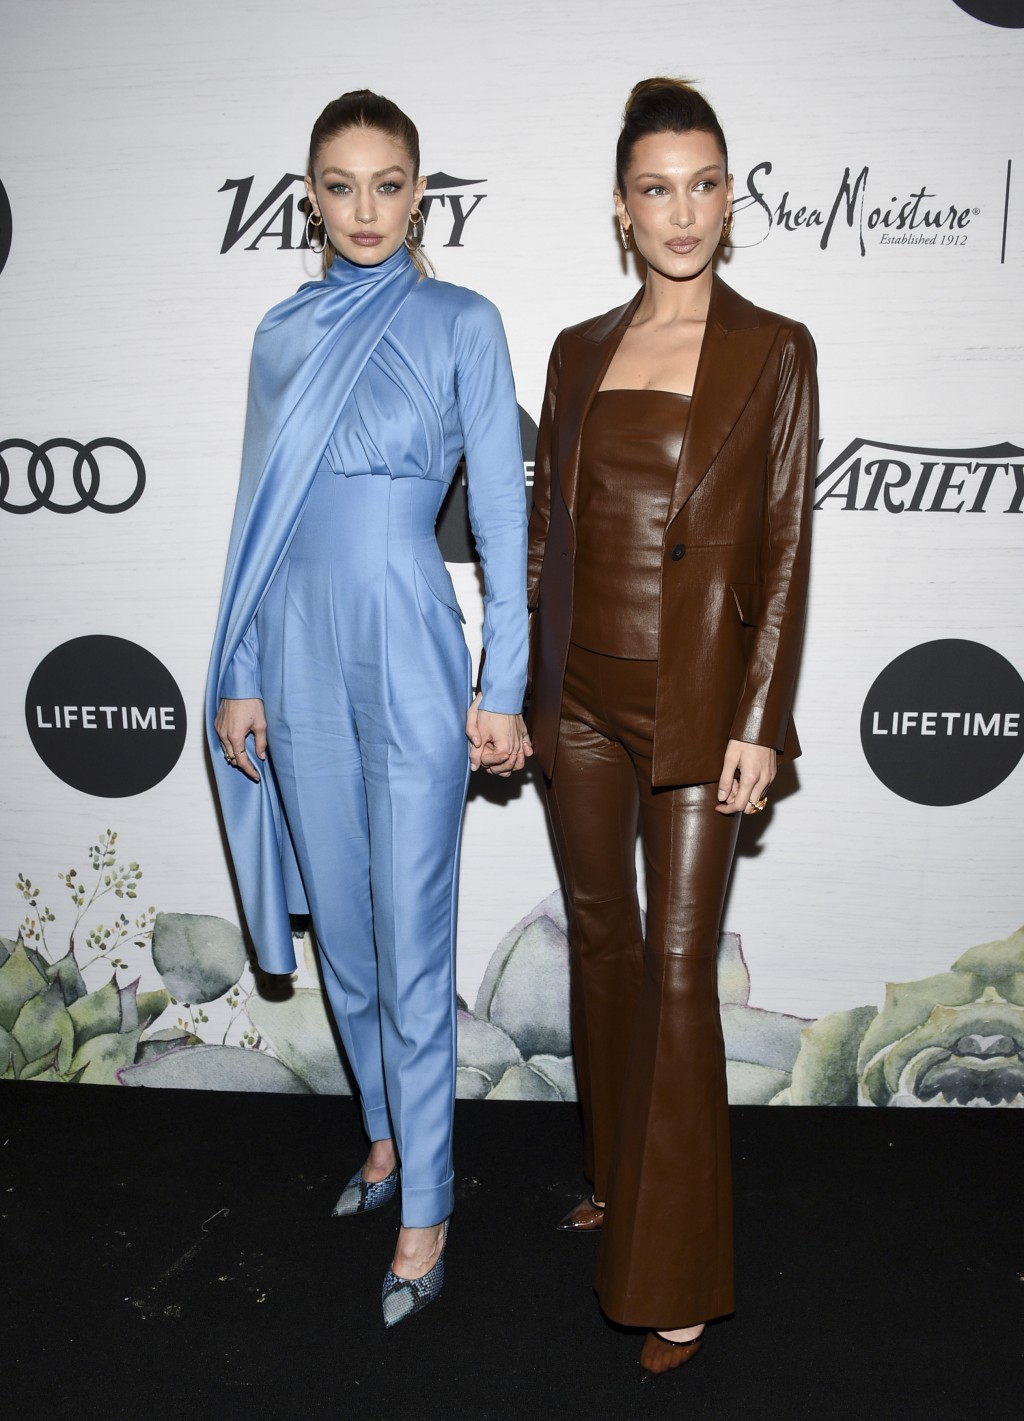 Honoree Gigi Hadid, left, and her sister model Bella Hadid attend Variety's Power of Women: New York presented by Lifetime at Cipriani 42nd Street on